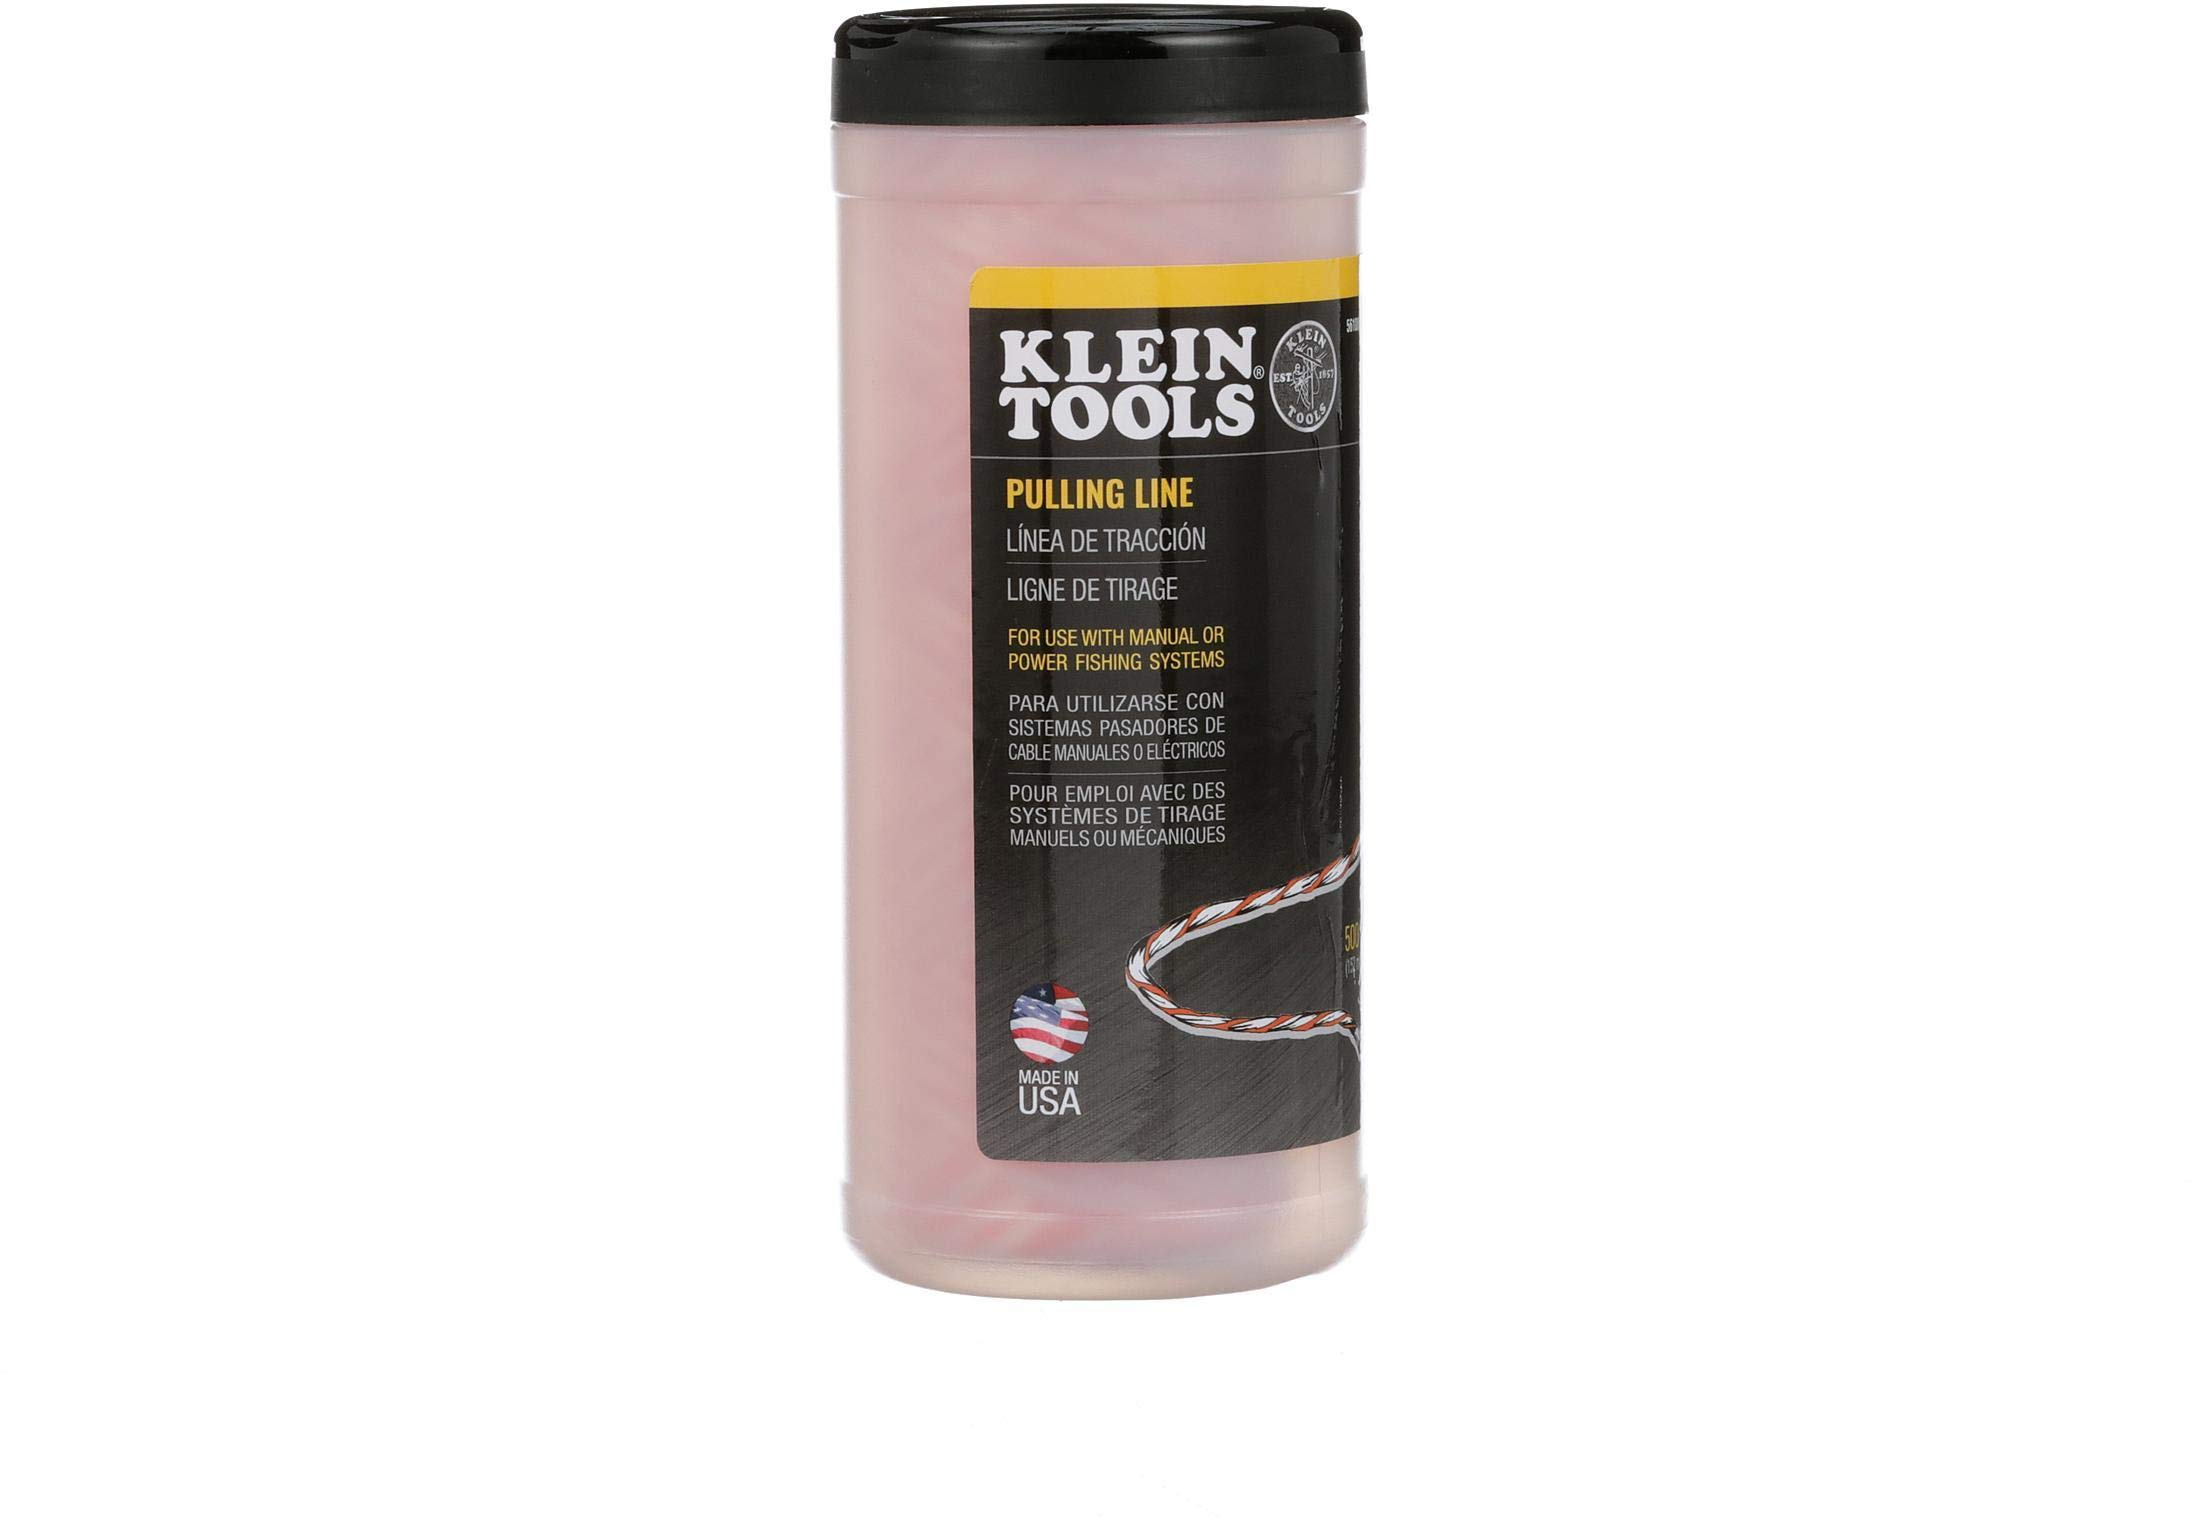 Pull Line for Light Duty Cable or Rope Pulling, 210 lb Average Breaking Strength 500-Foot Klein Tools 56108 by Klein Tools